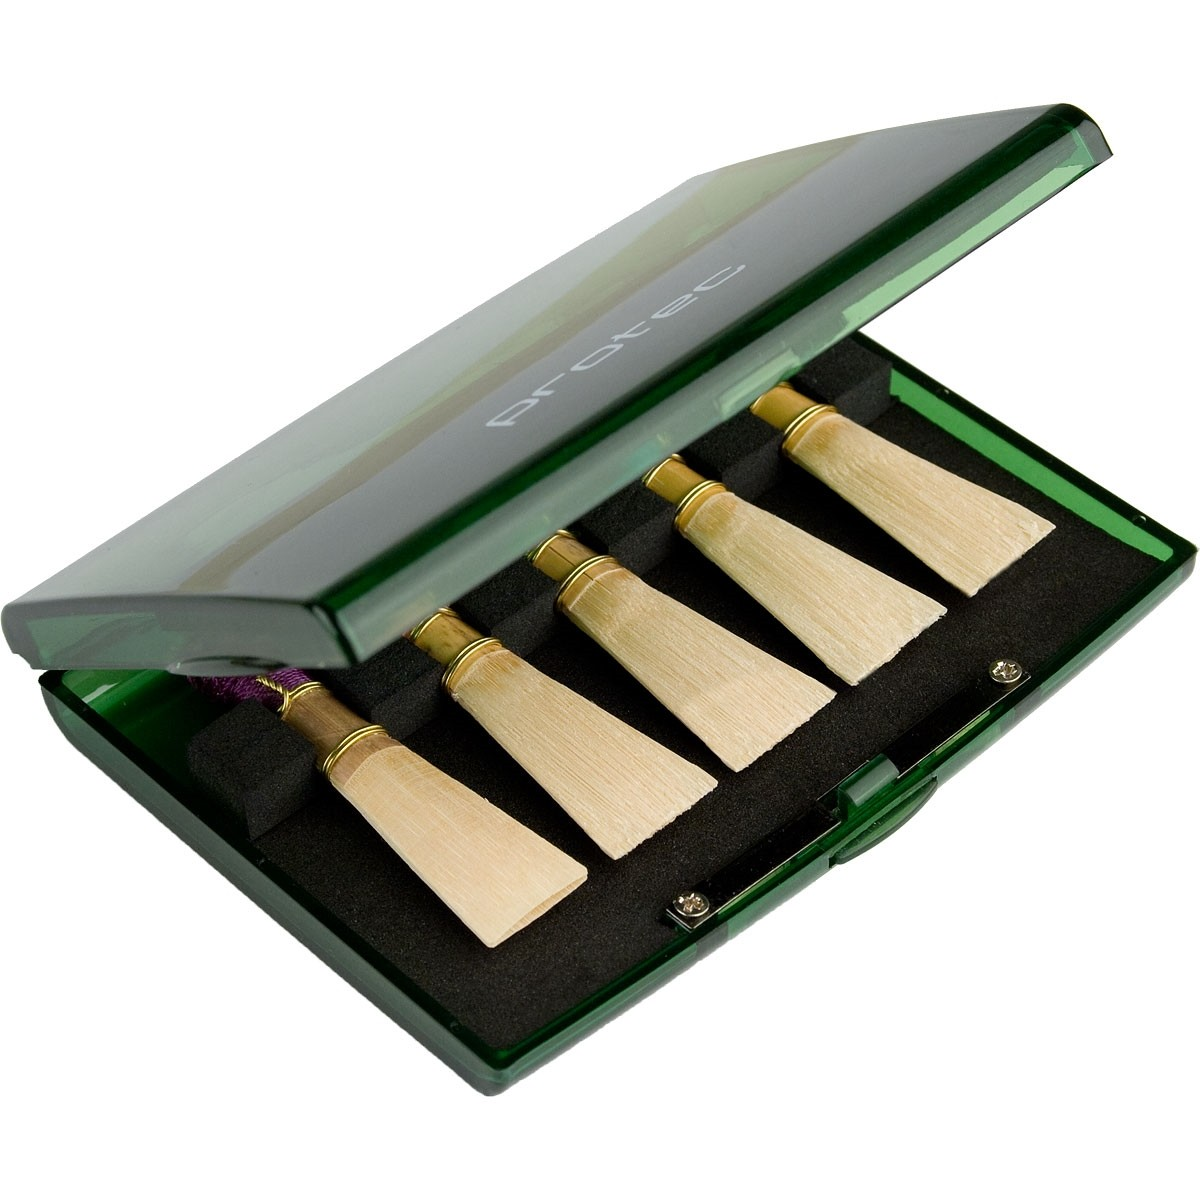 Protec Bassoon Reed Case (A253TL) - Trans Lime